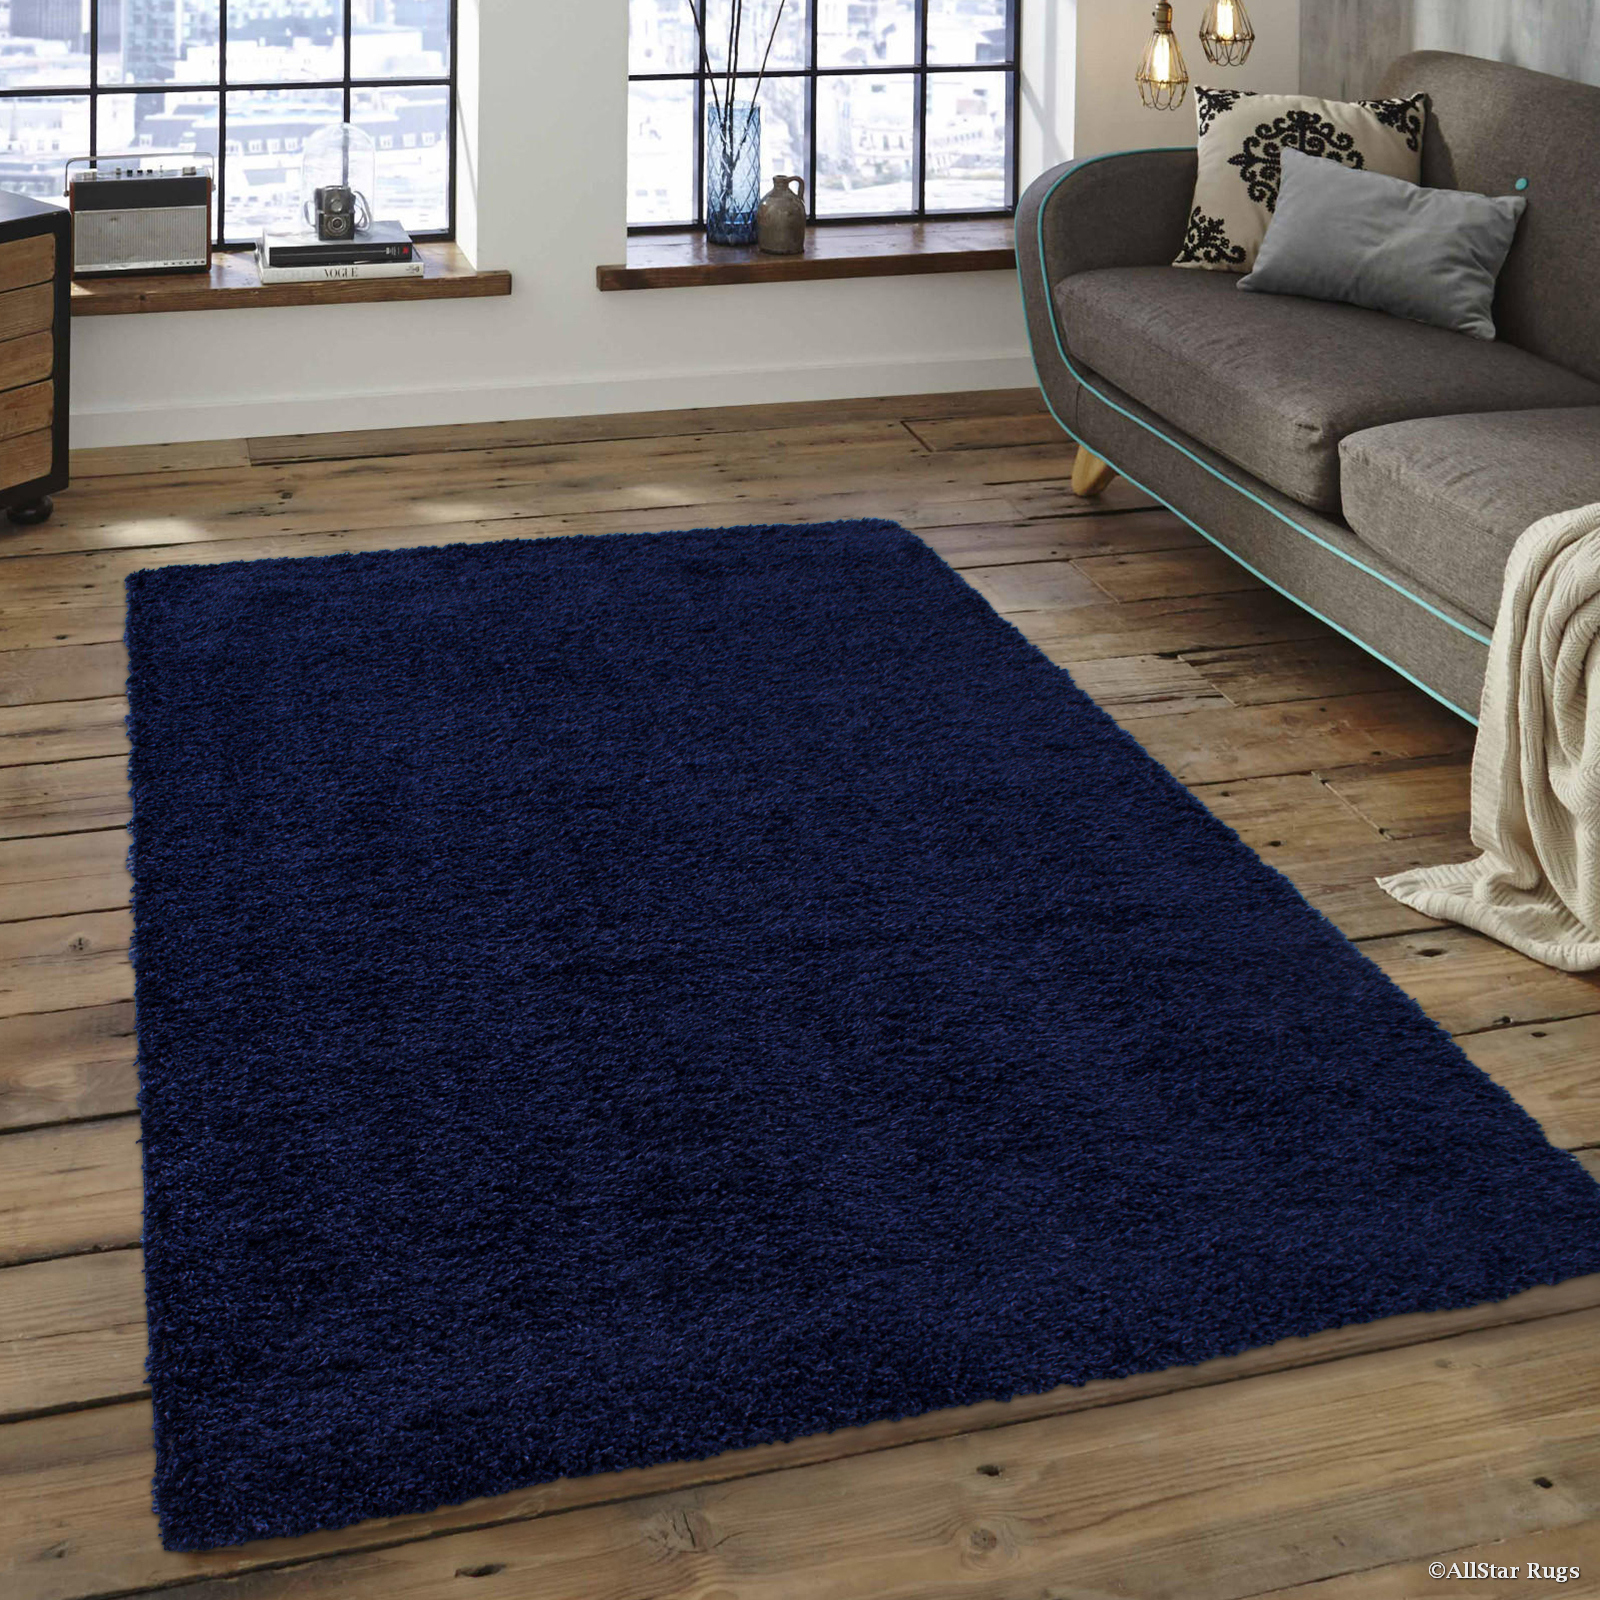 "Allstar Modern Contemporary Denim High Pile Posh and Shaggy Solid Area Rug (7' 9"" x 10' 0"") by"